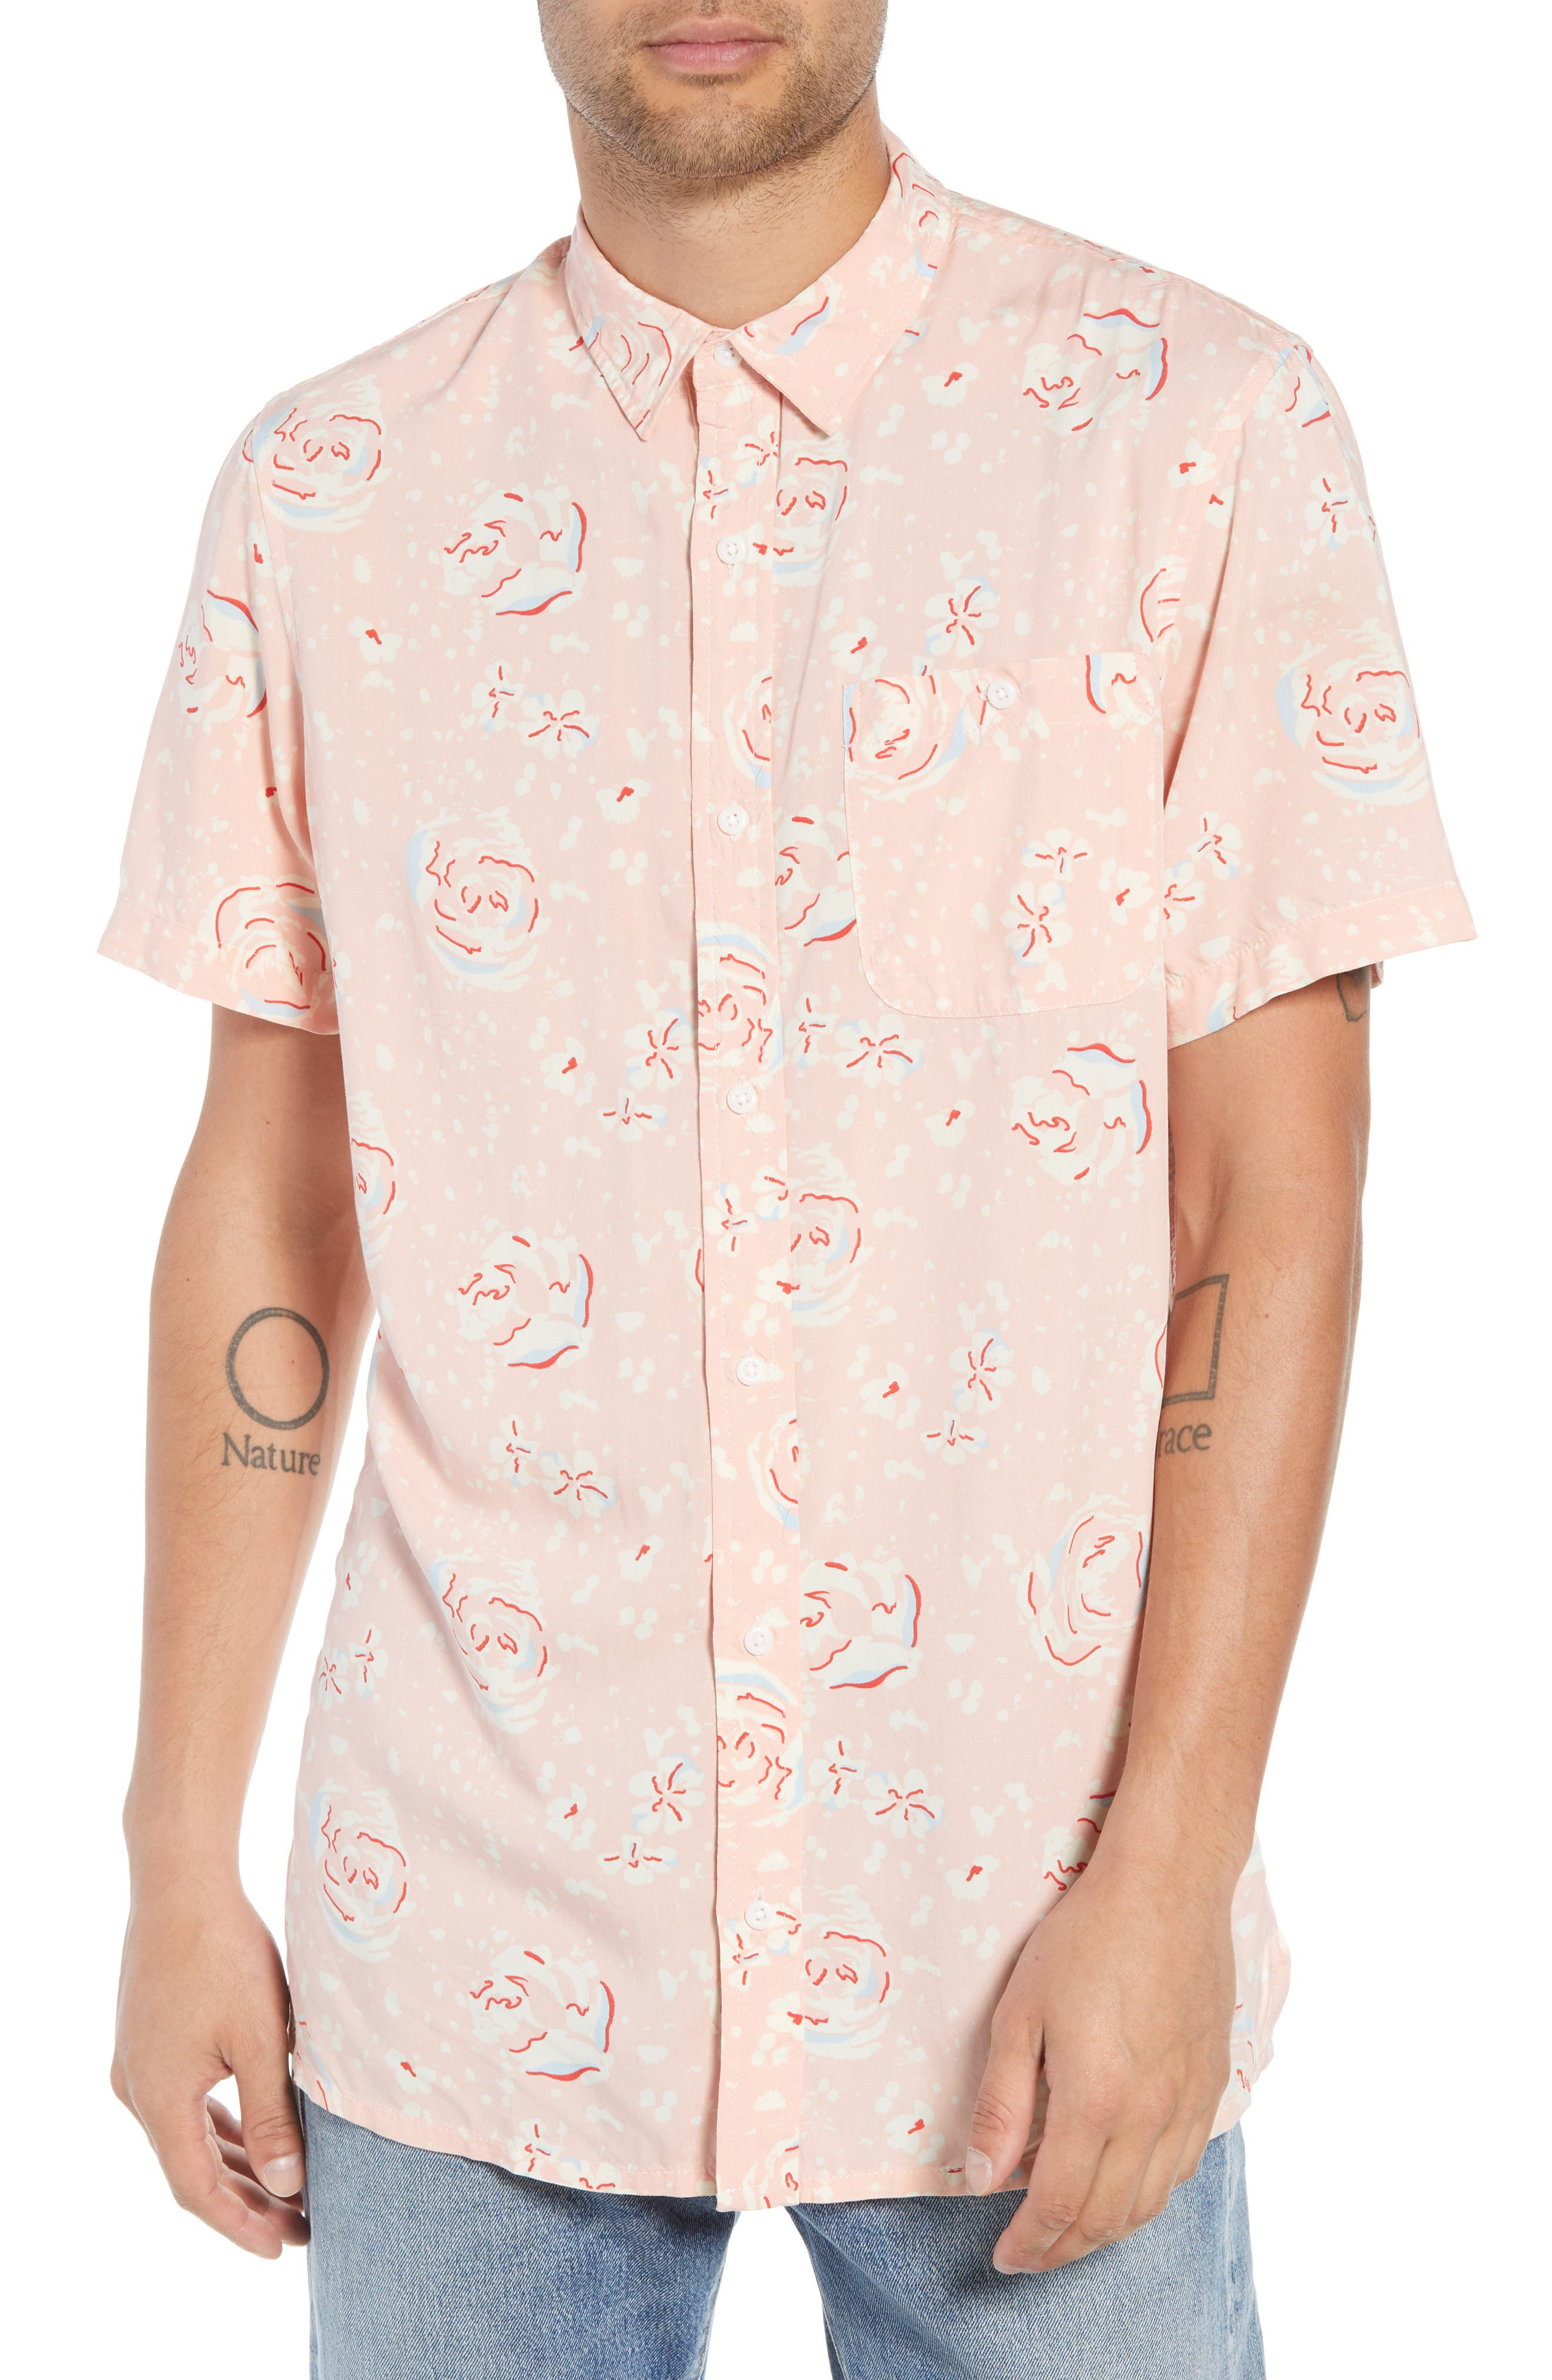 Print Woven Shirt,                         Main,                         color, Pink Silver Abstract Floral